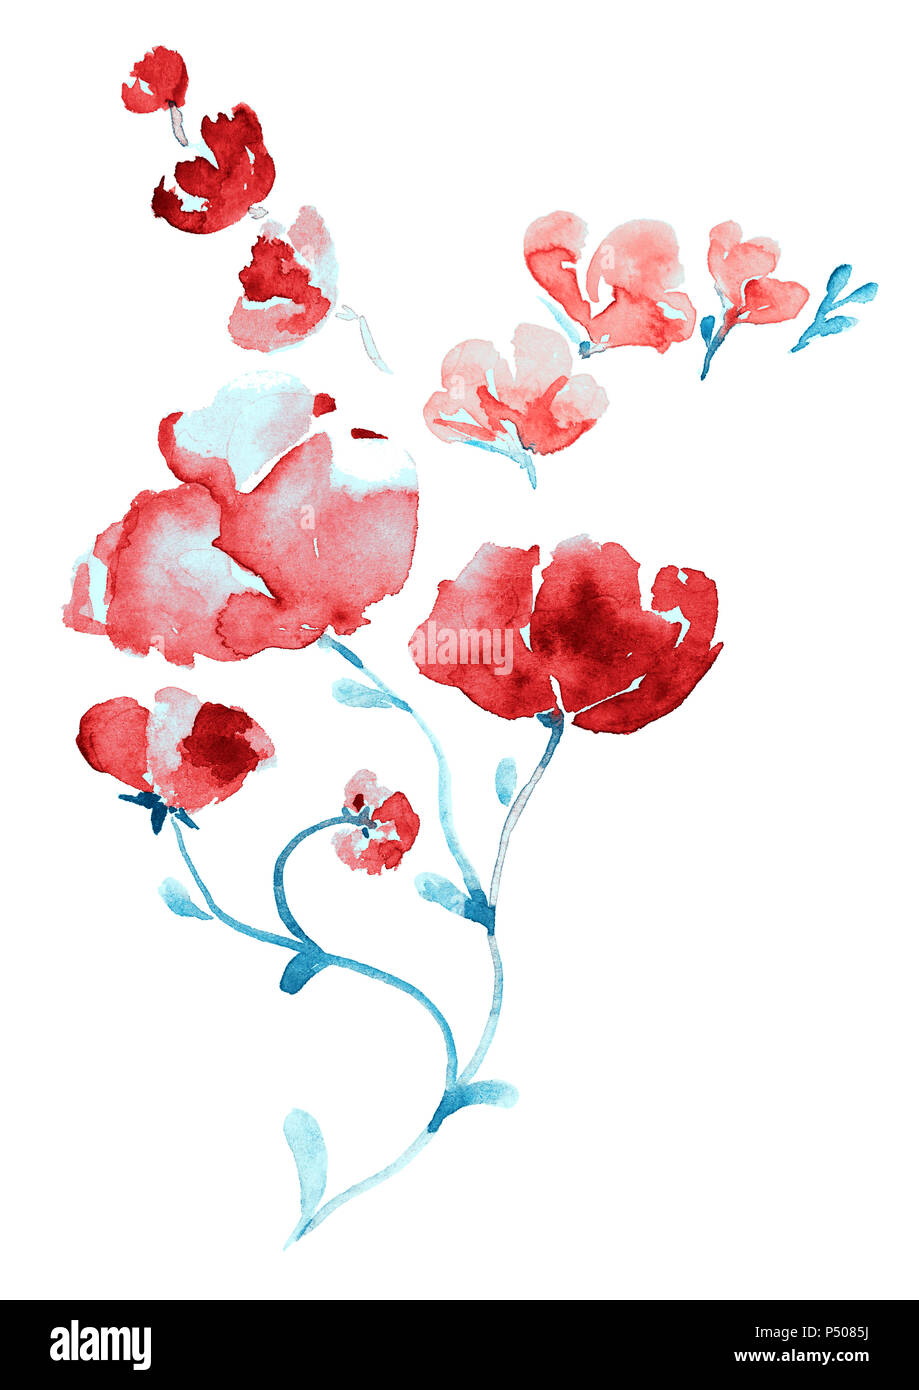 Purple Watercolor Flowers Stock Photos & Purple Watercolor Flowers ...